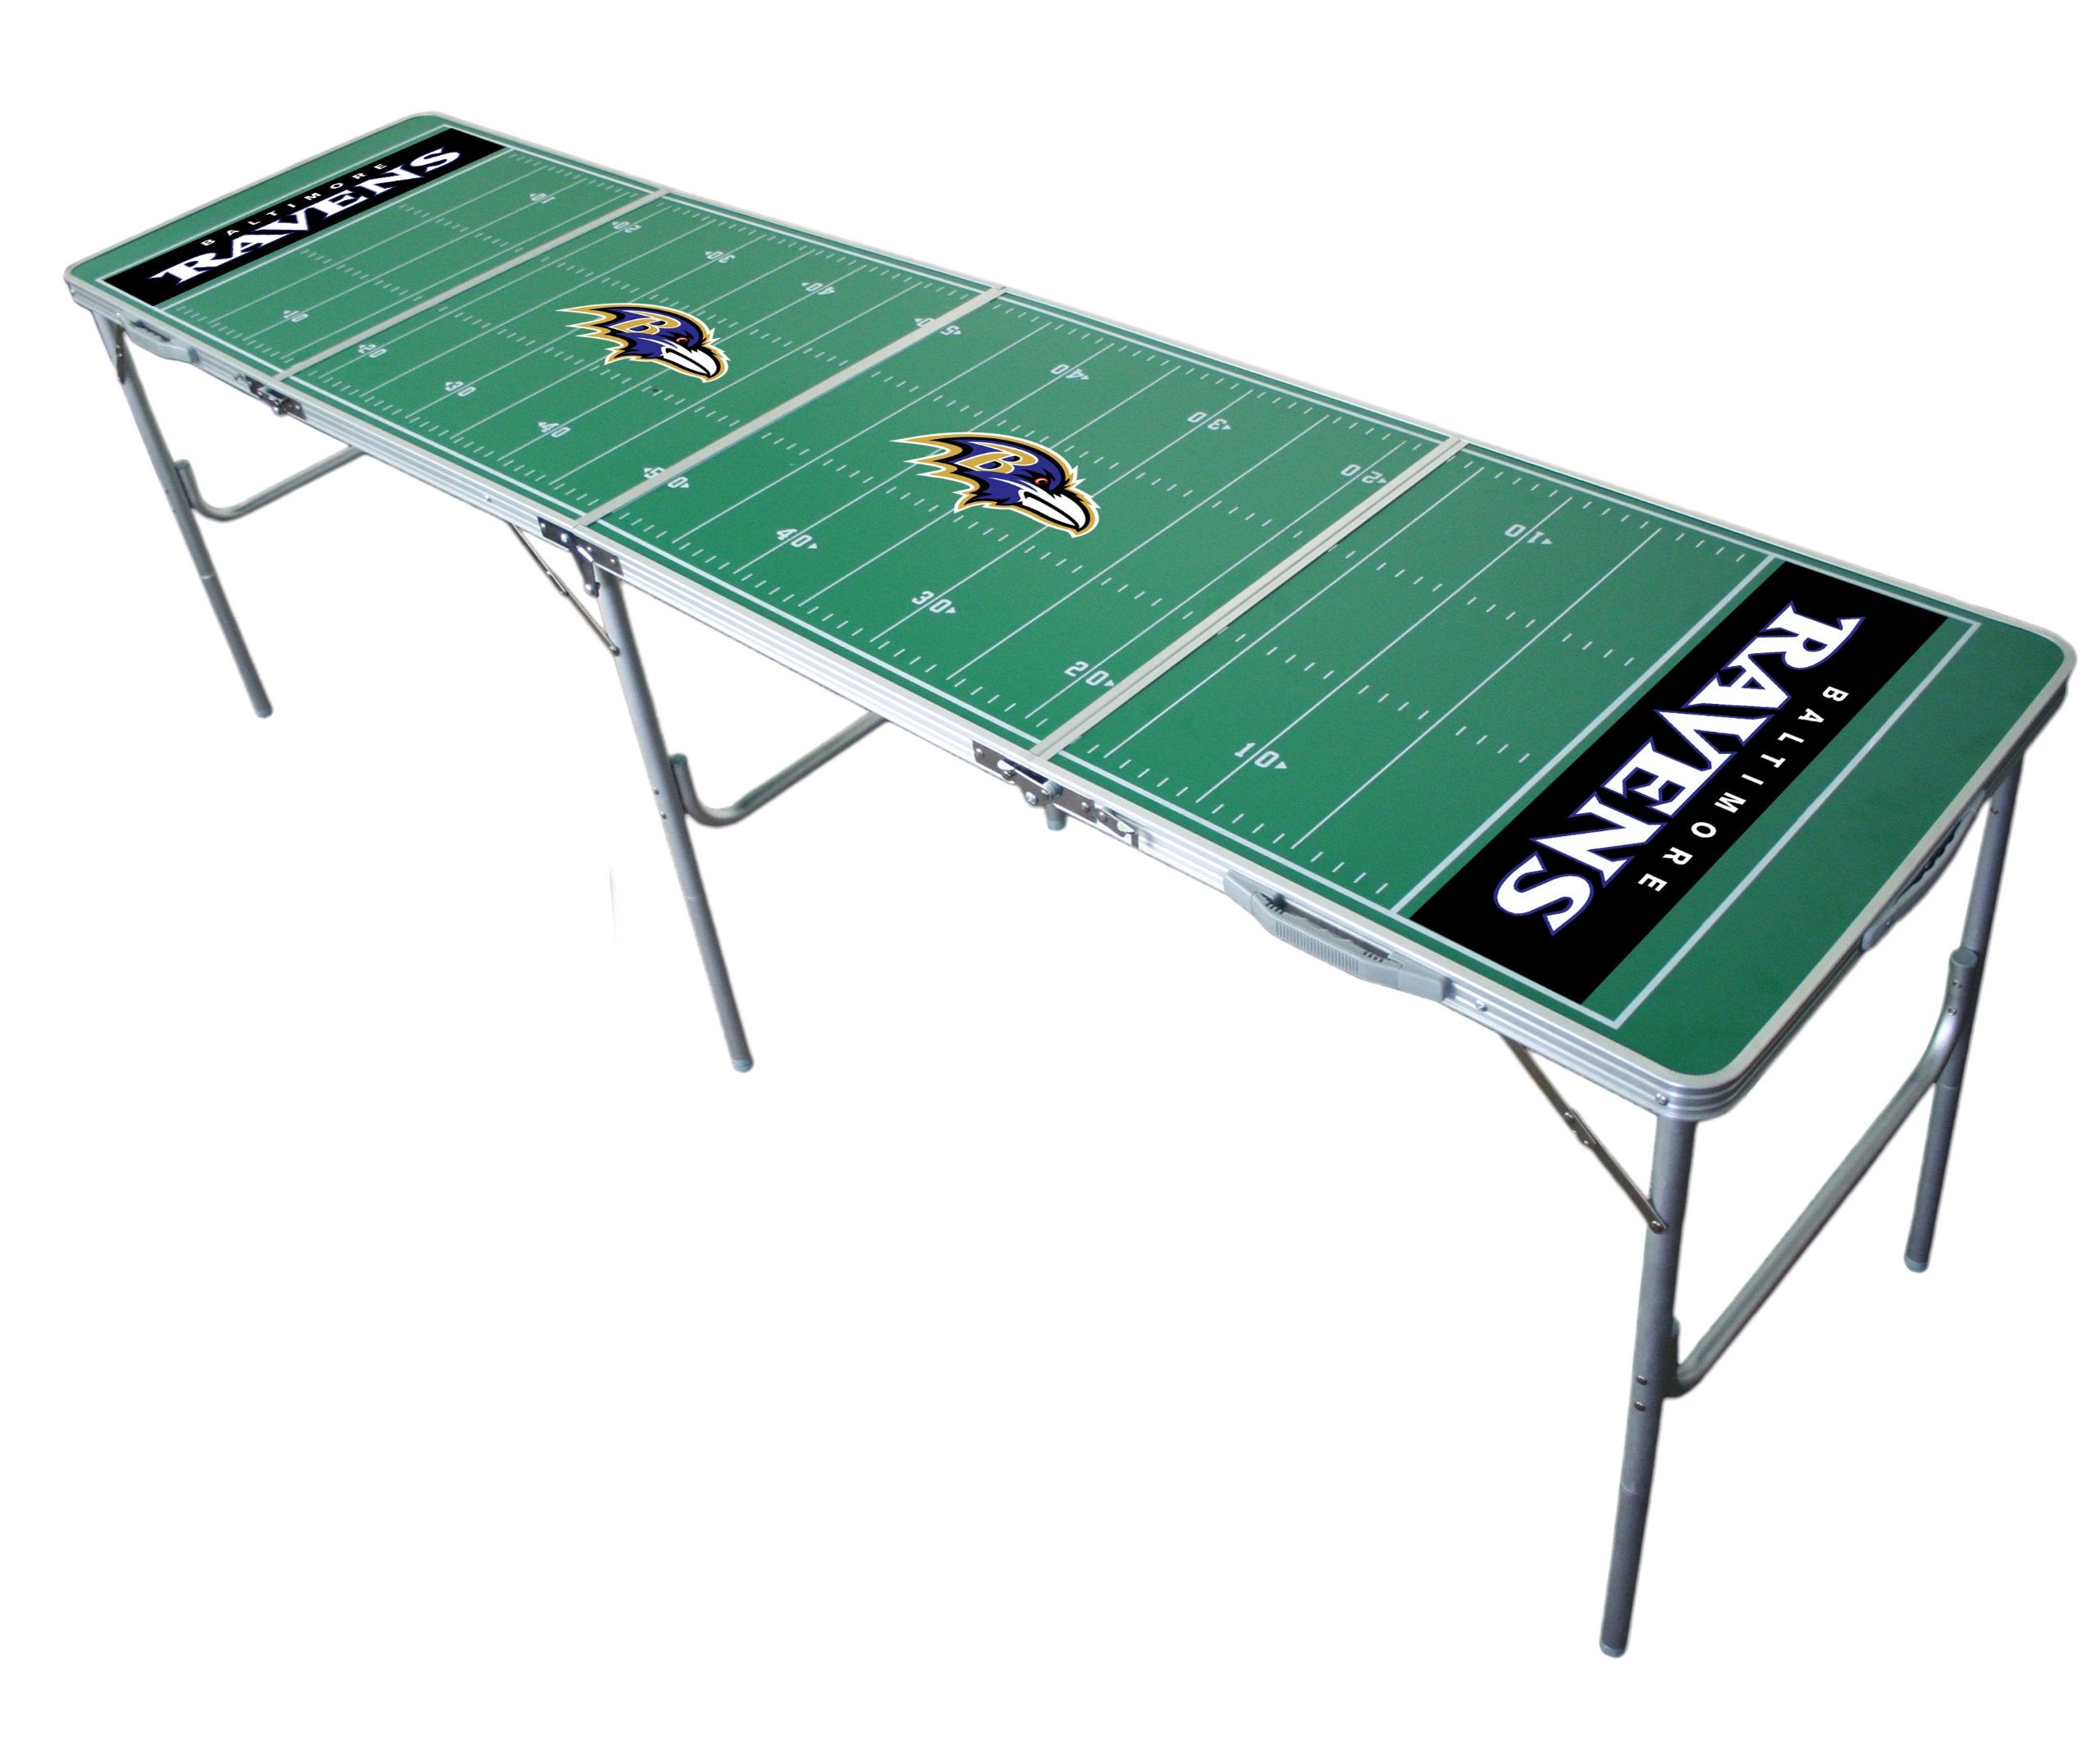 Baltimore Ravens 2x8 Tailgate Table by Wild Sports by Wild Sports